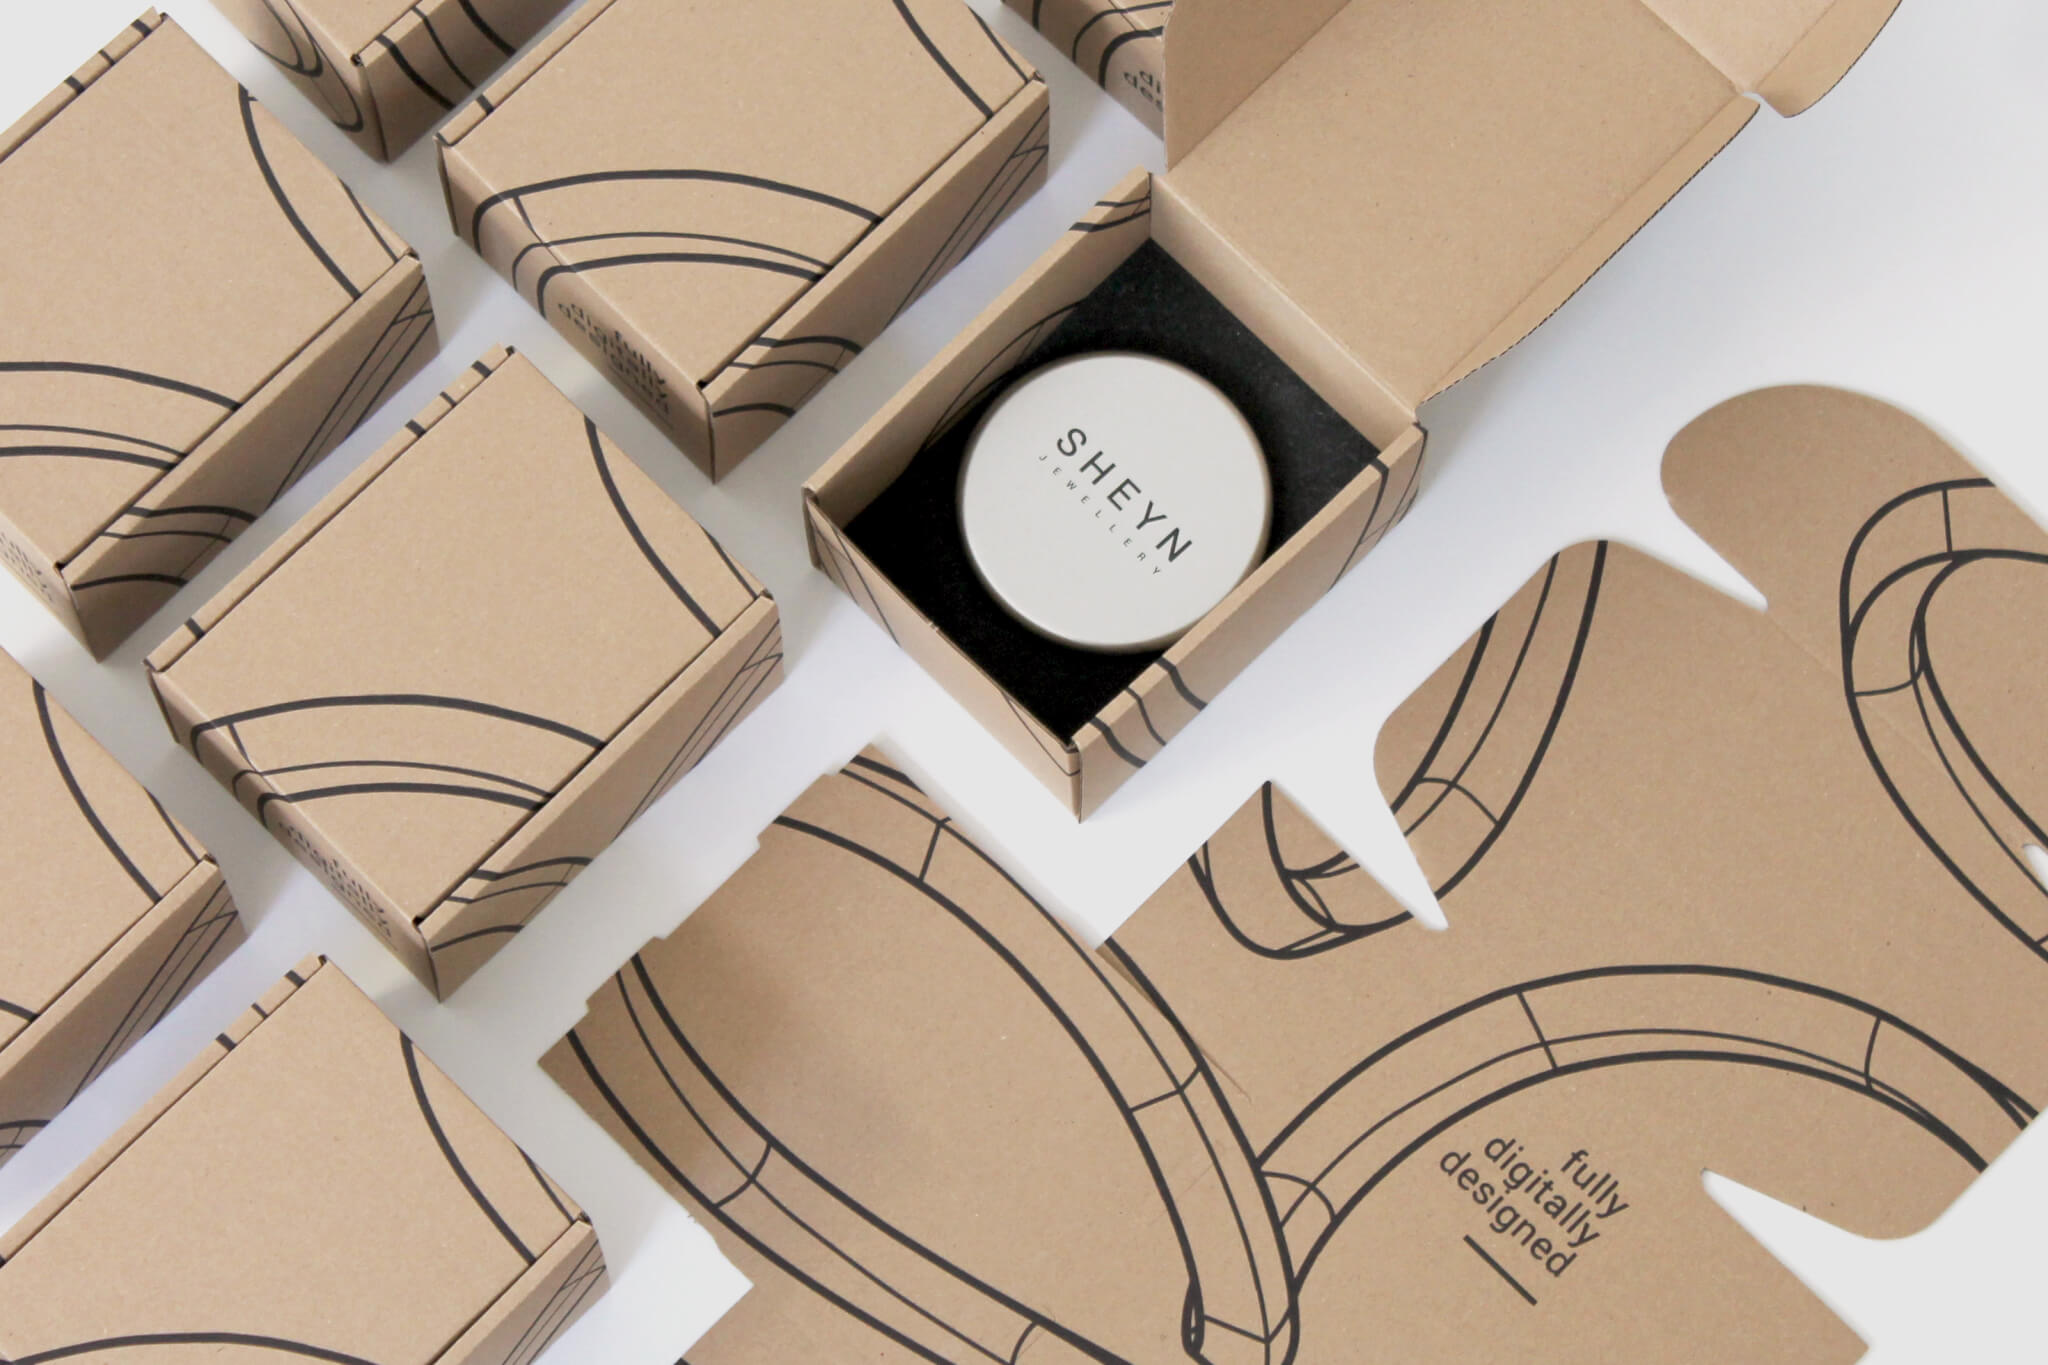 packaging sostenible - ejemplo de la marca Sheyn